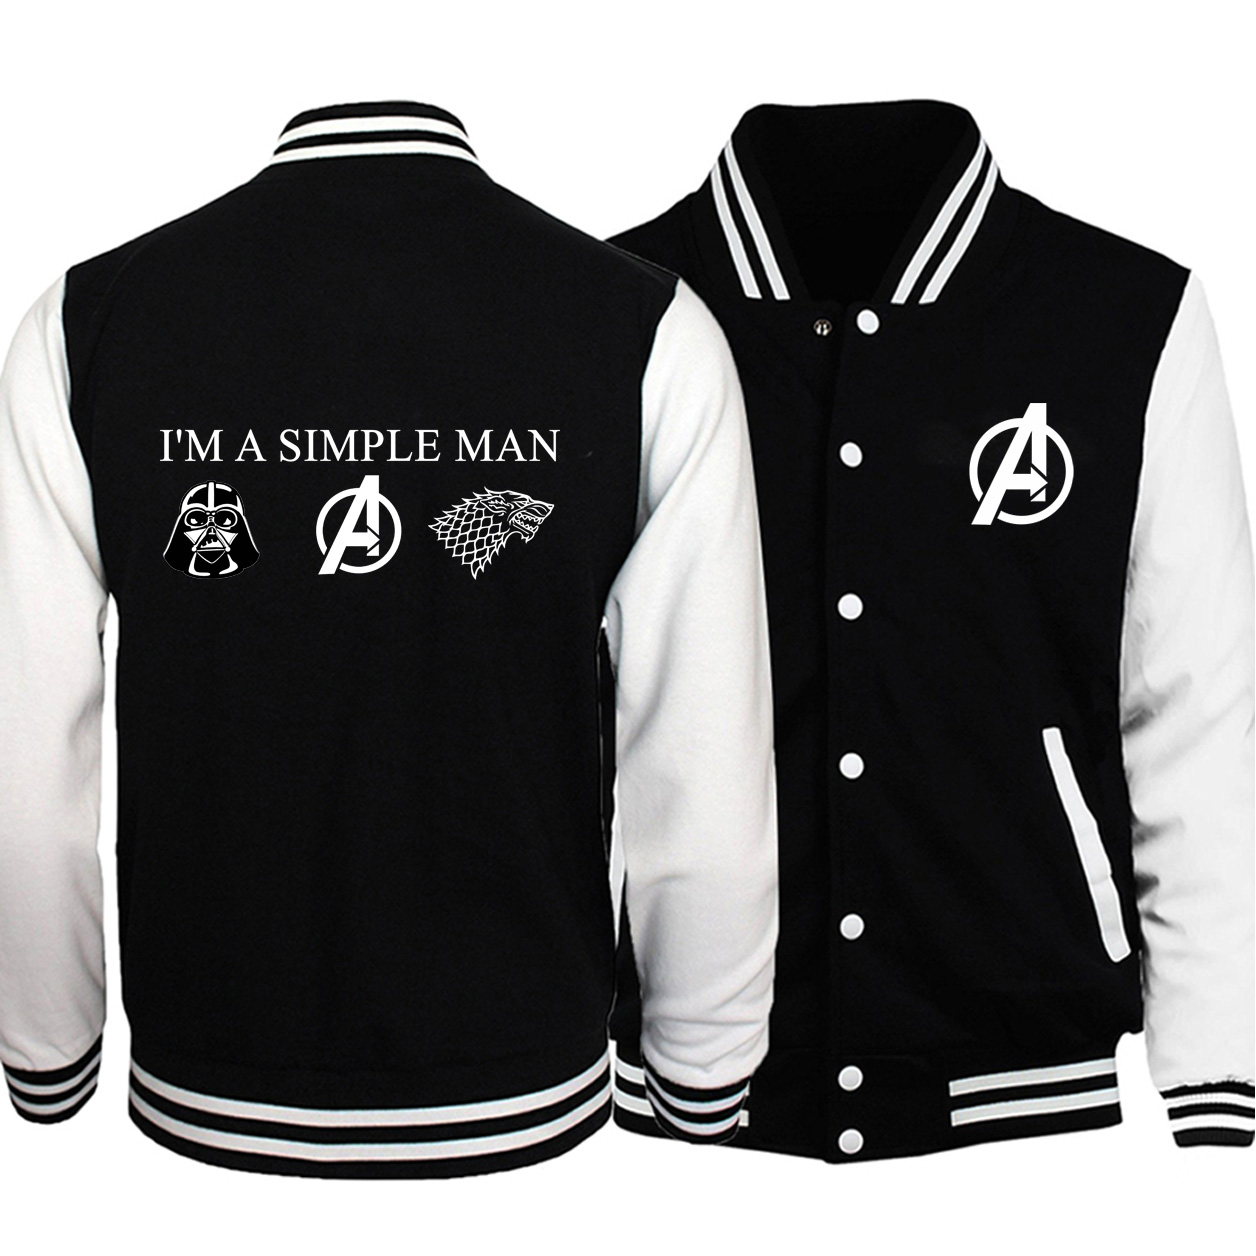 Game of Thrones Star Wars The Avengers Baseball Men Jackets Coat Winter Autumn White Black Sportswear Starwars Outwear Plus Size image